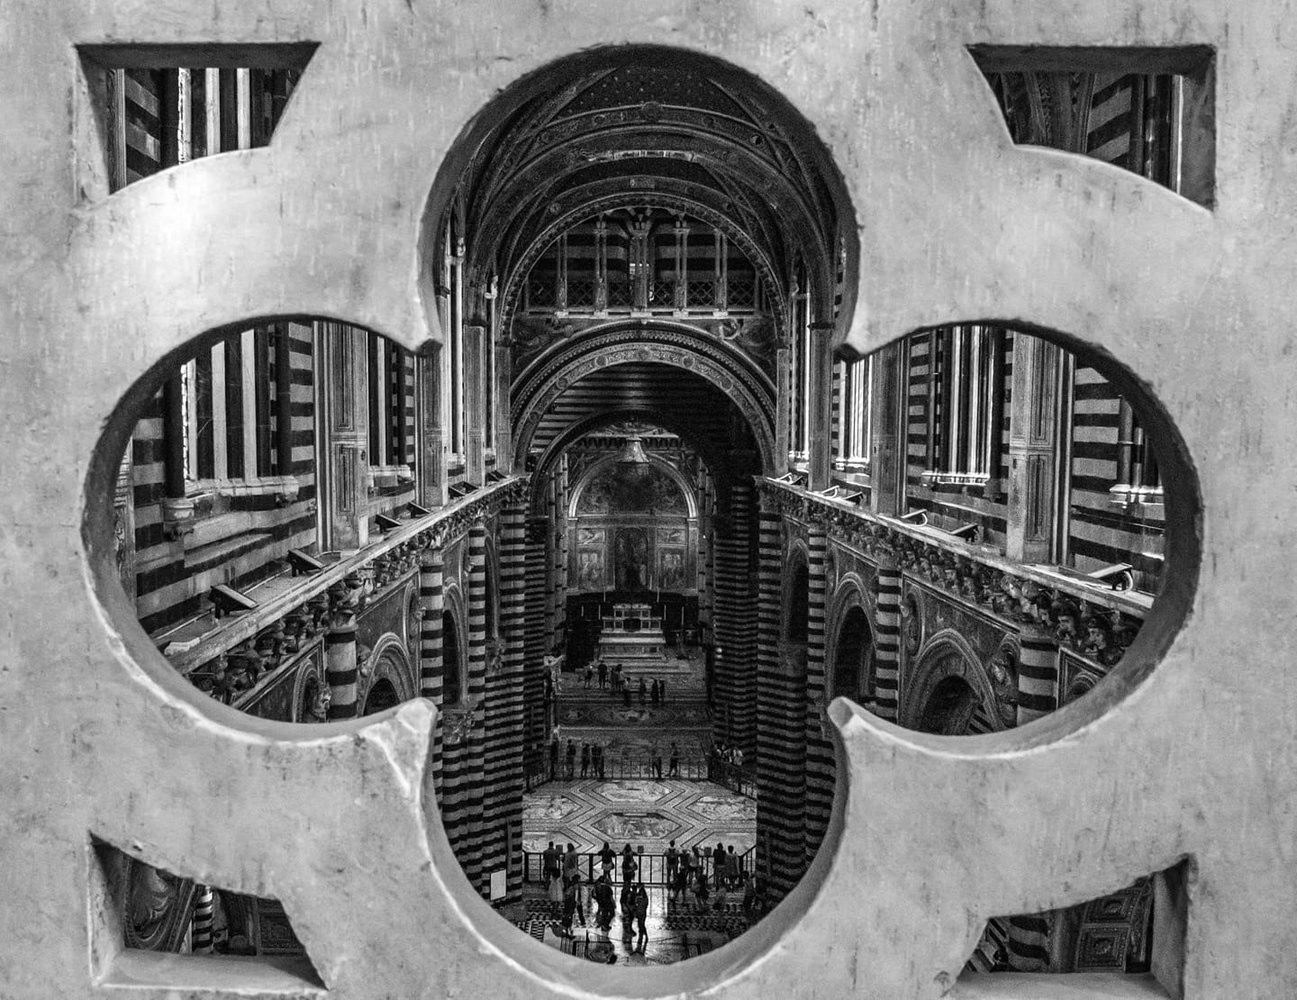 An exiting view in the Siena Catedral by Peter Vlutters